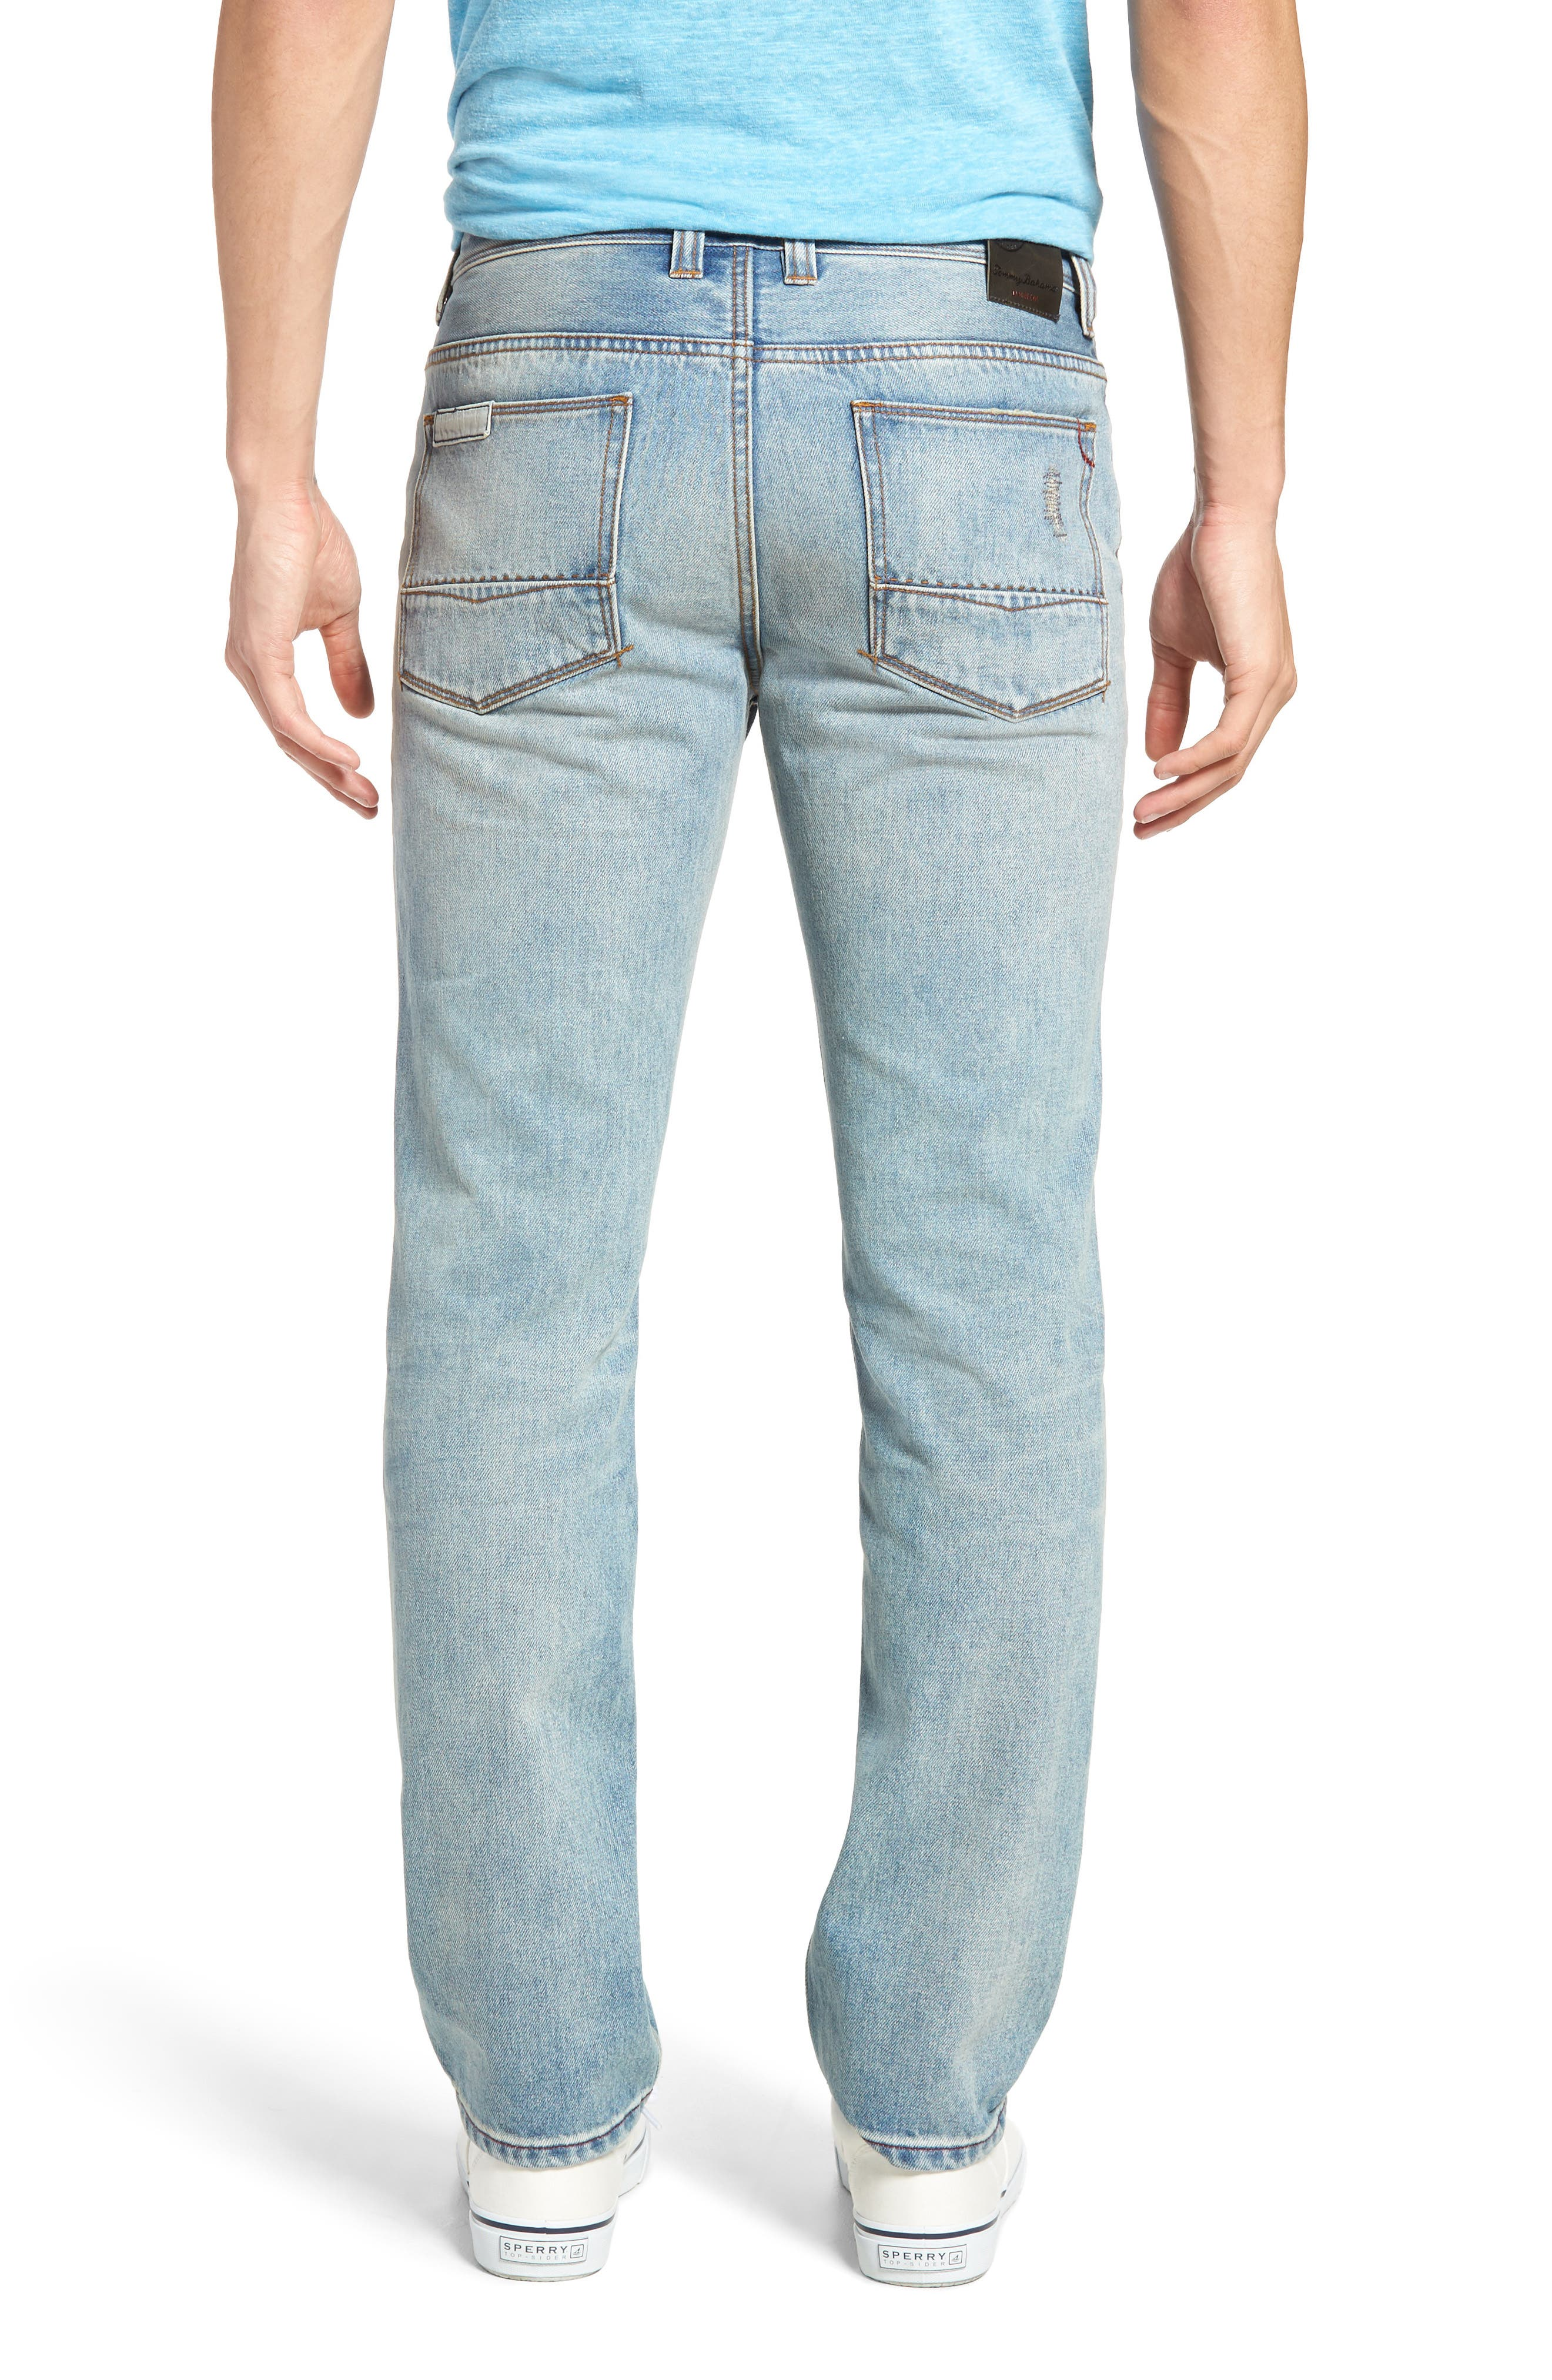 Castaway Slim Fit Jeans,                             Alternate thumbnail 2, color,                             400